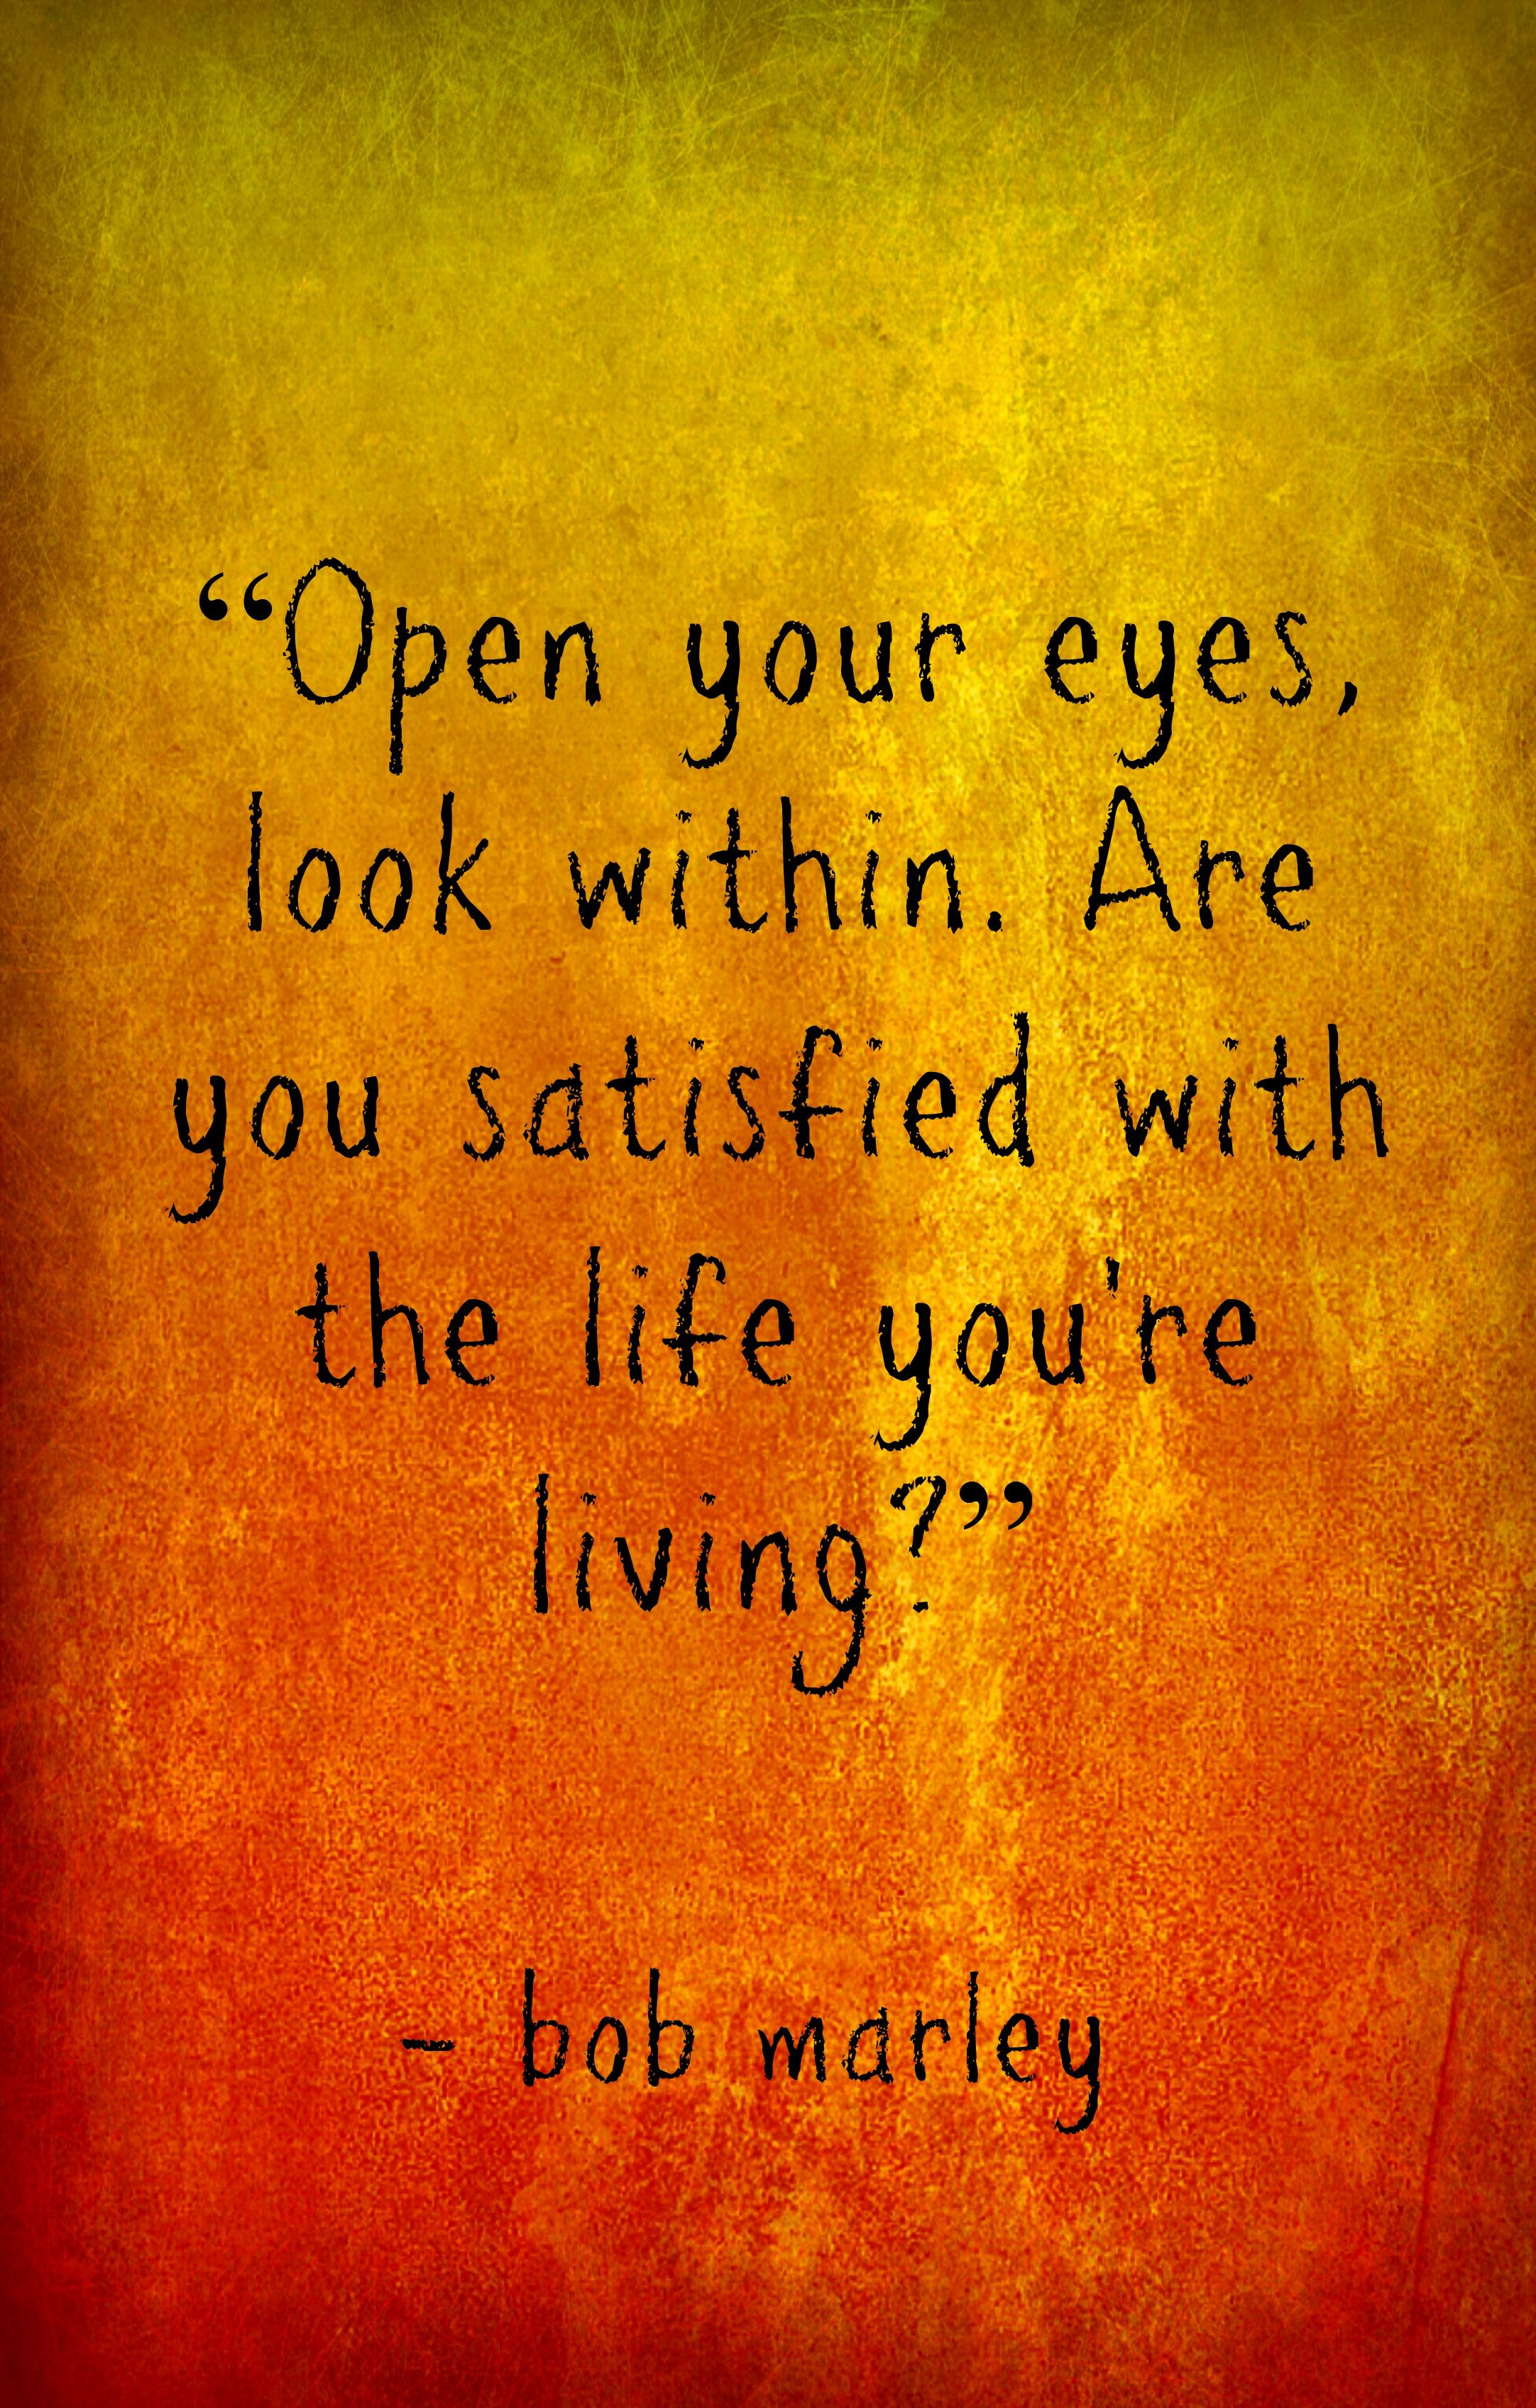 Bob Marley Quotes Open Your Eyes Look Within Bob Marley Quotes Celebration Quotes New Quotes